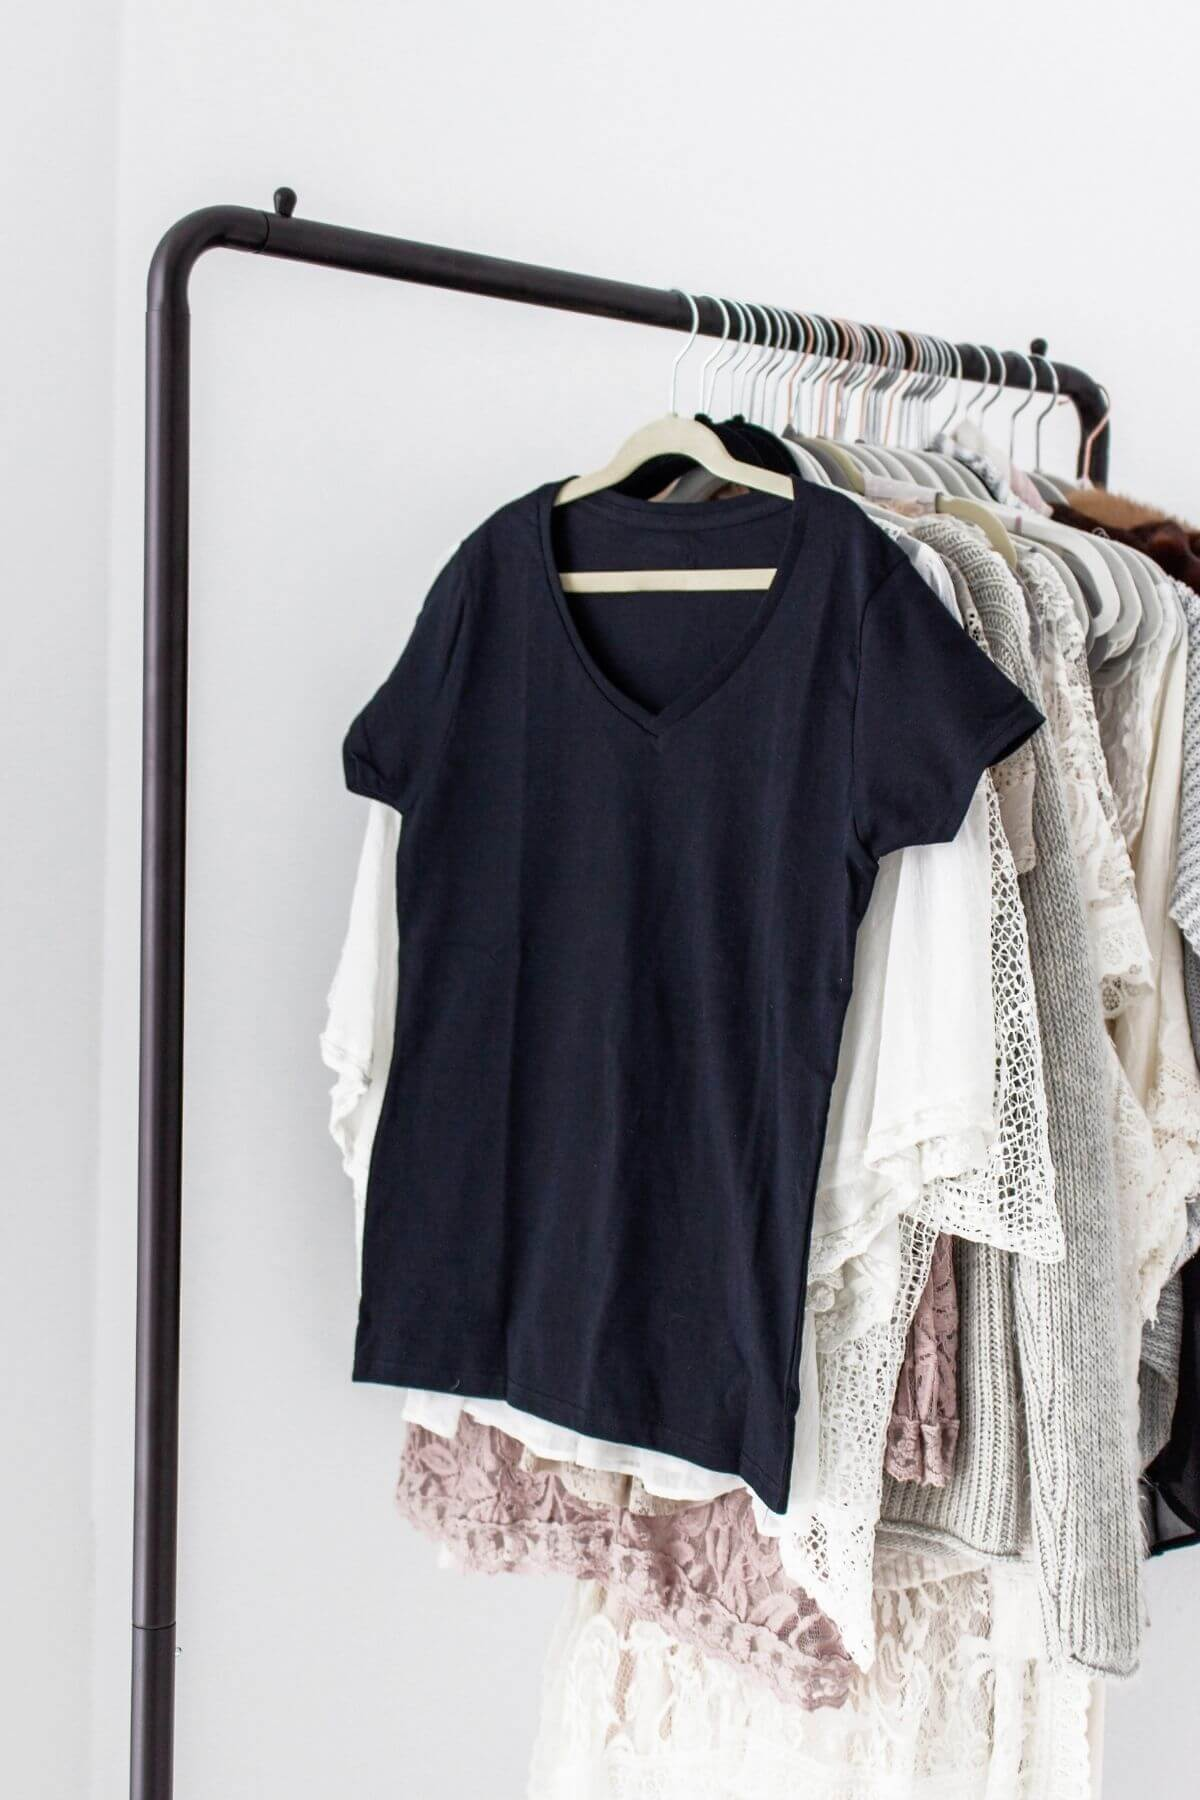 Shirts on clothes rack